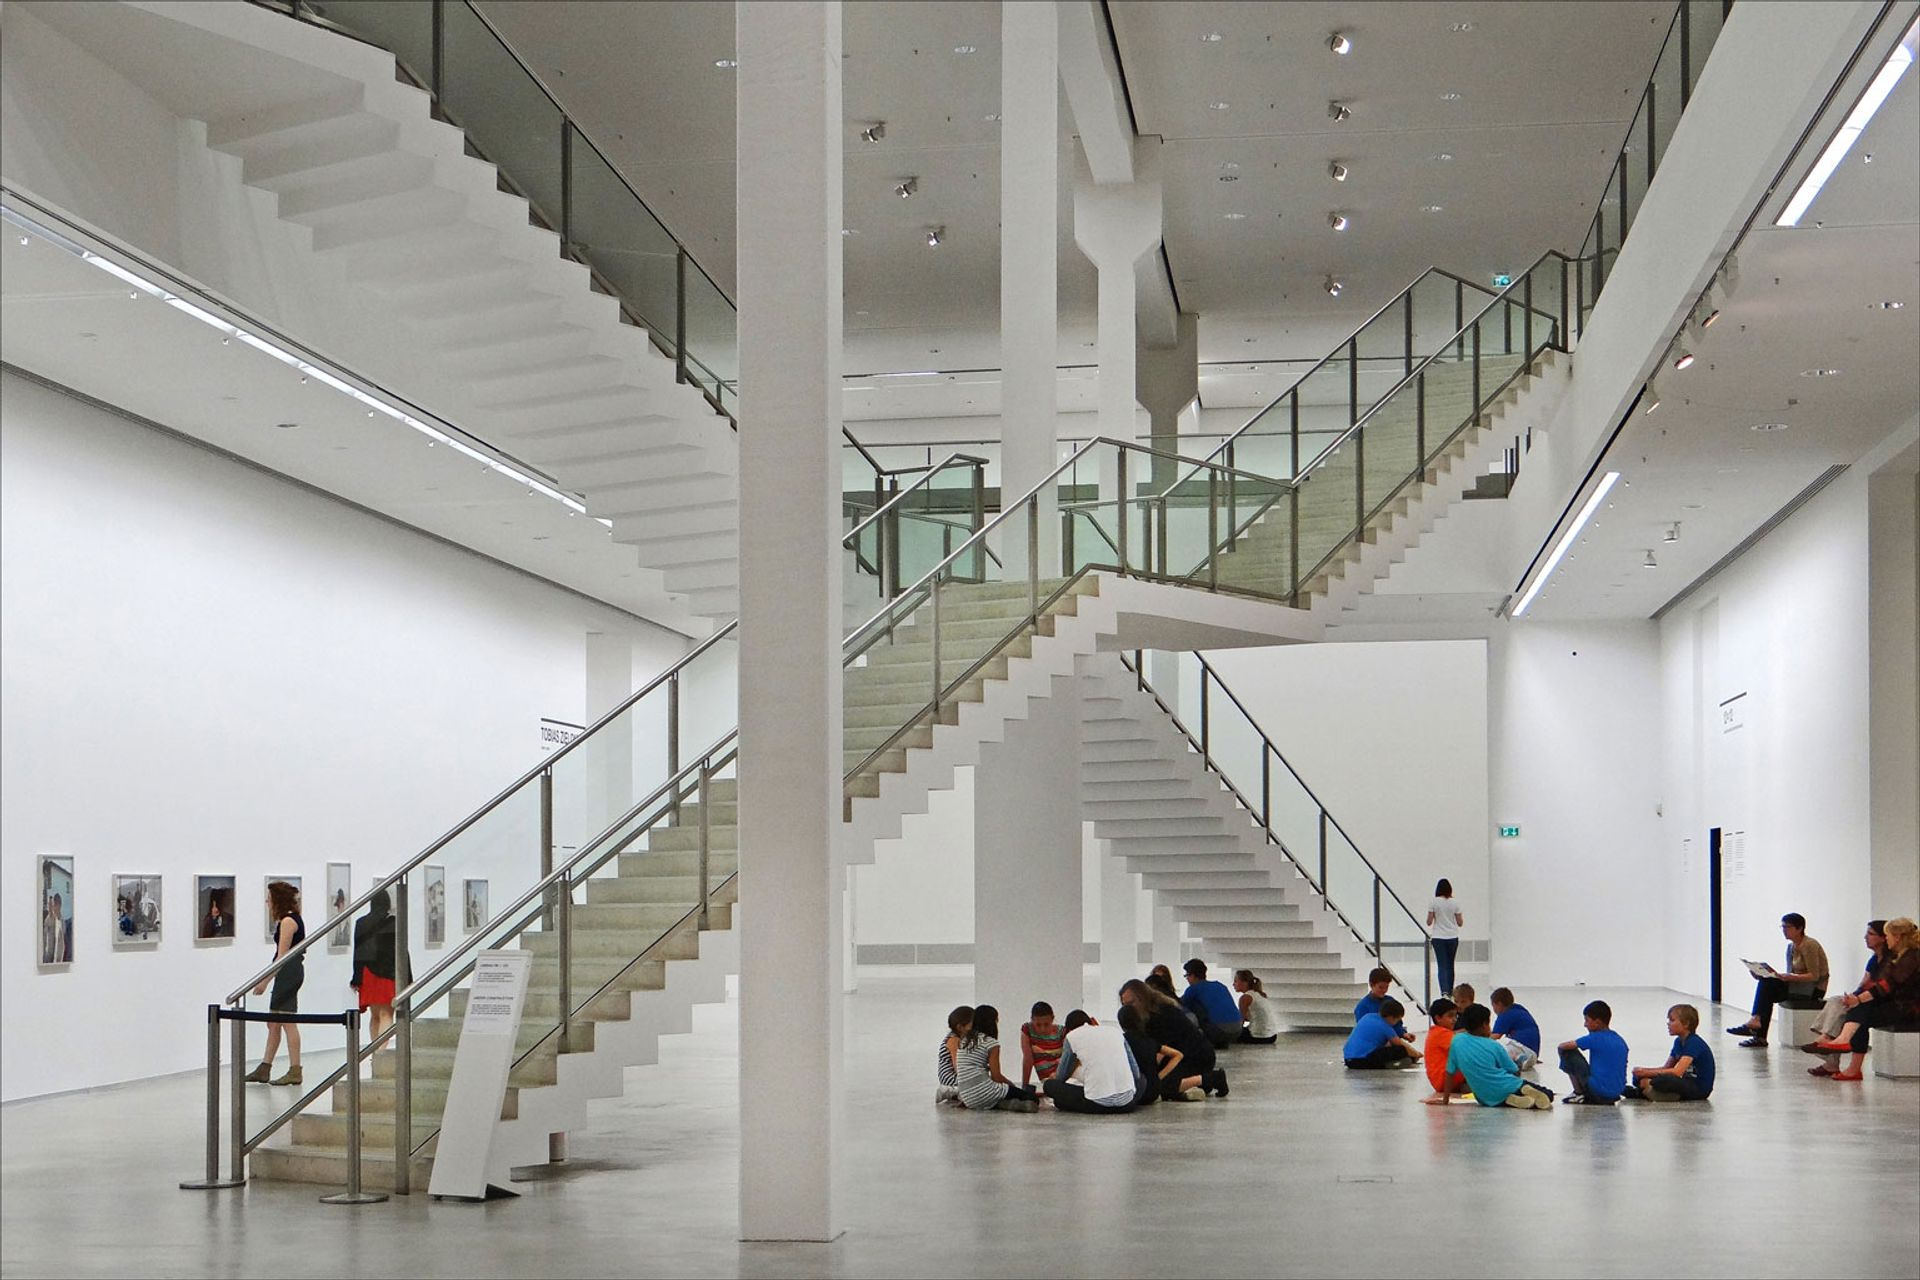 The Berlinische Galerie has closed due to structural problems © Jean-Pierre Dalbéra/Flickr